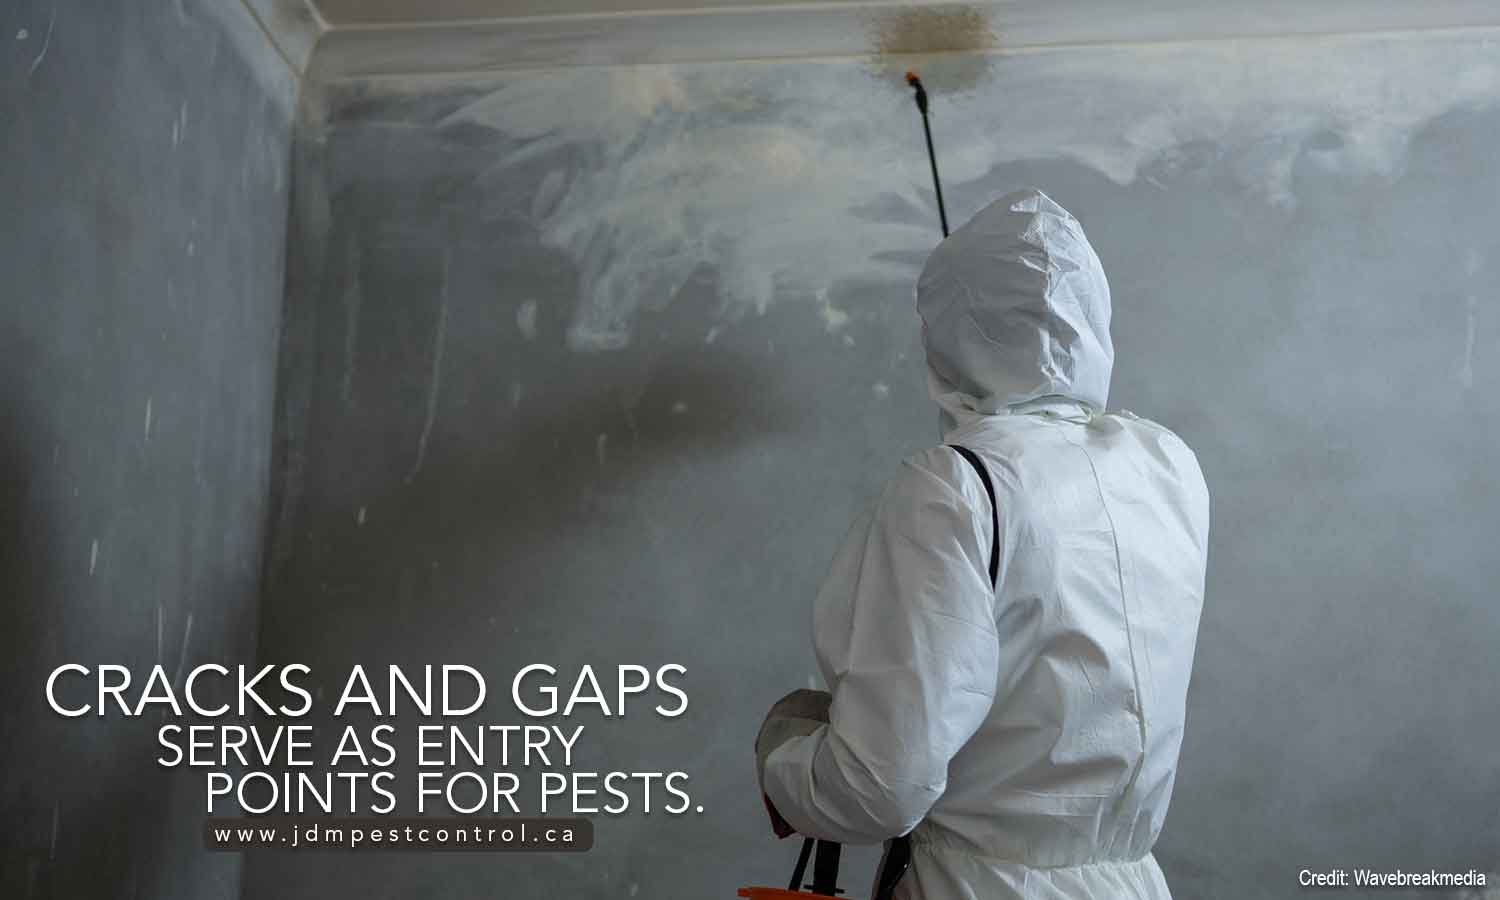 Cracks and gaps serve as entry points for pests.